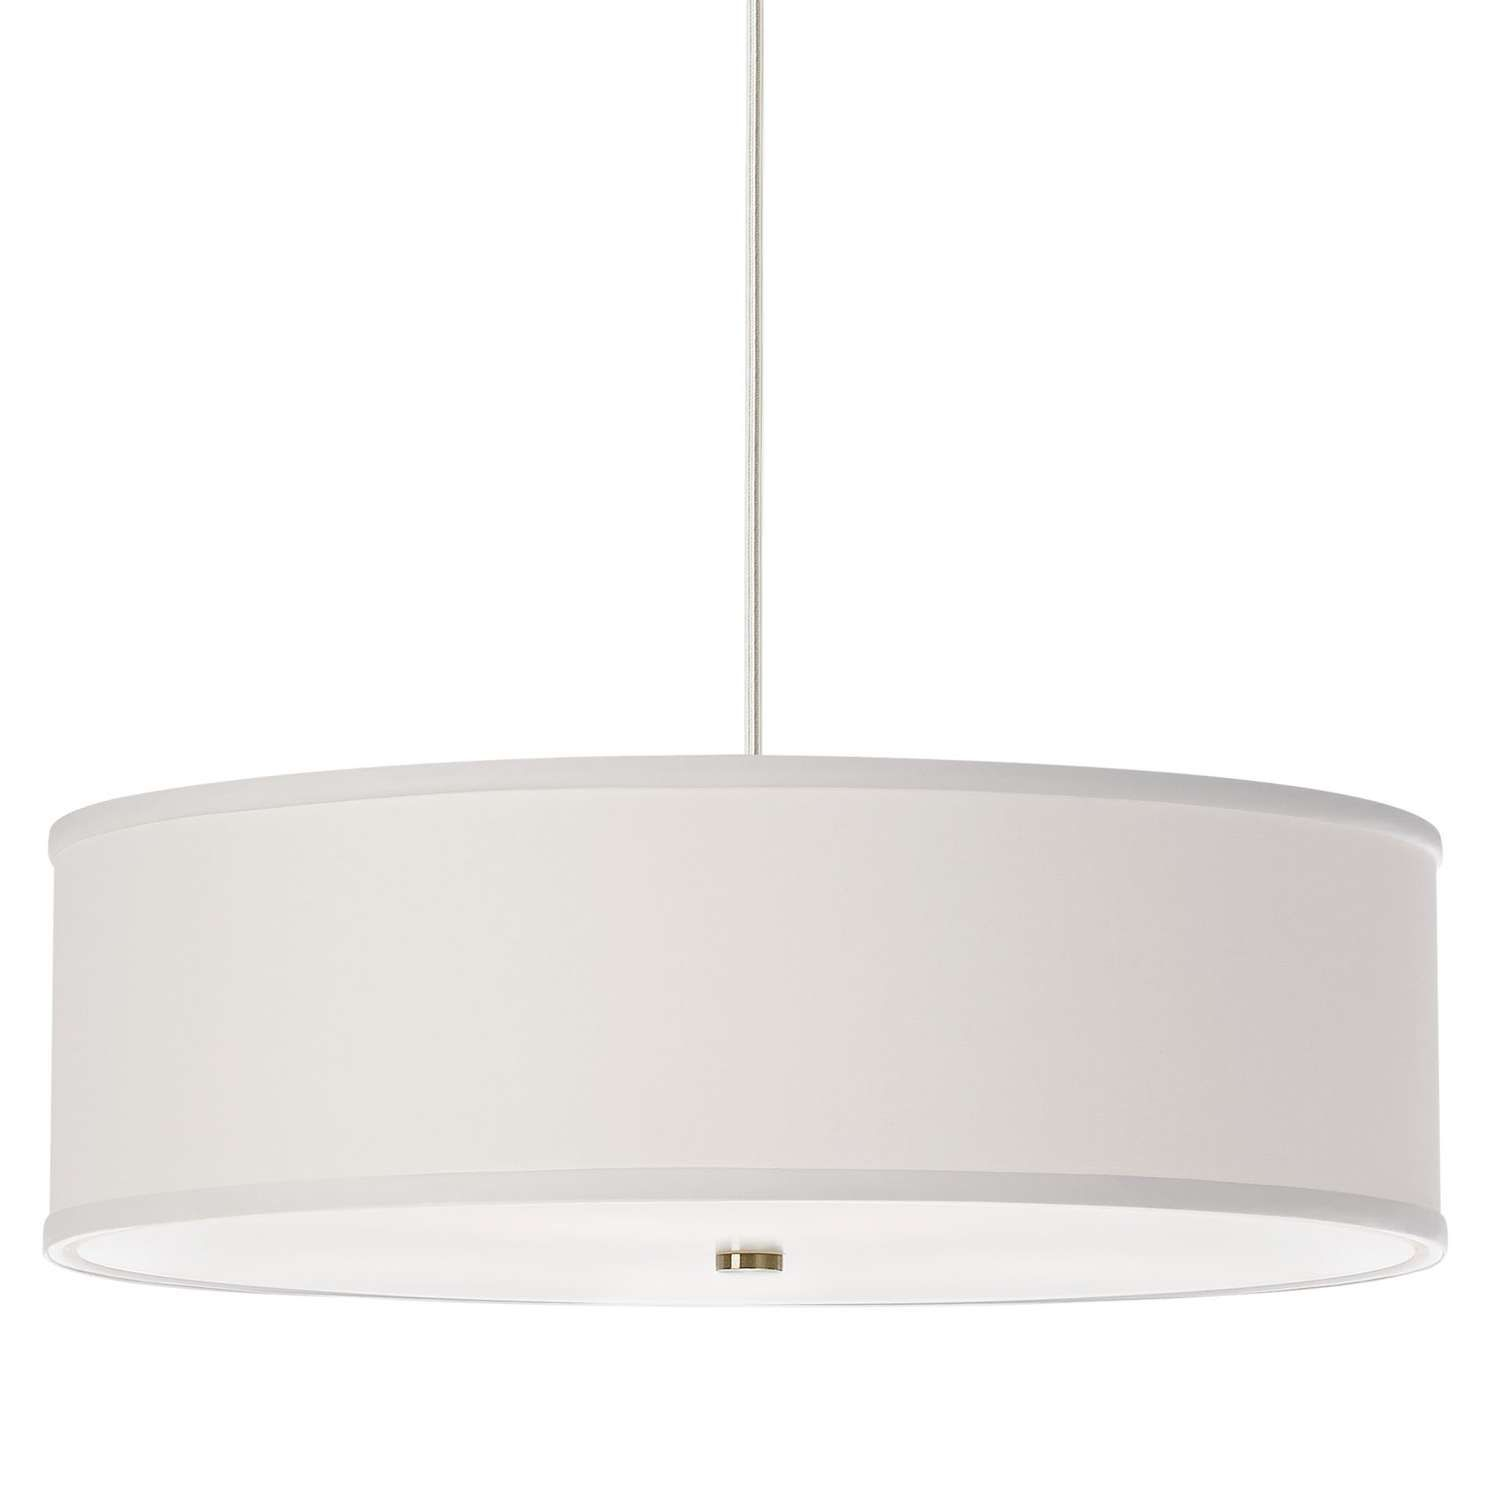 Mulberry pendant glass diffuser bronze finish and canopy